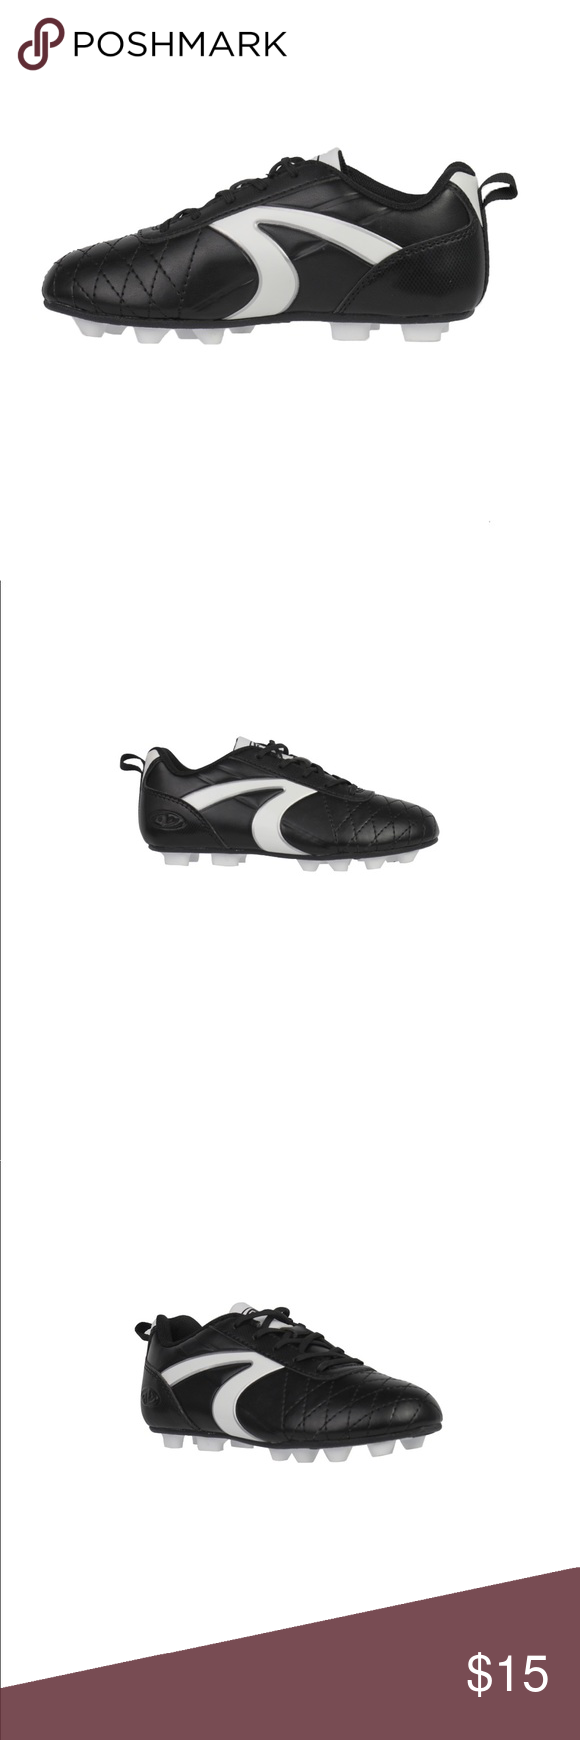 Boys' Athletic Works Soccer Cleat